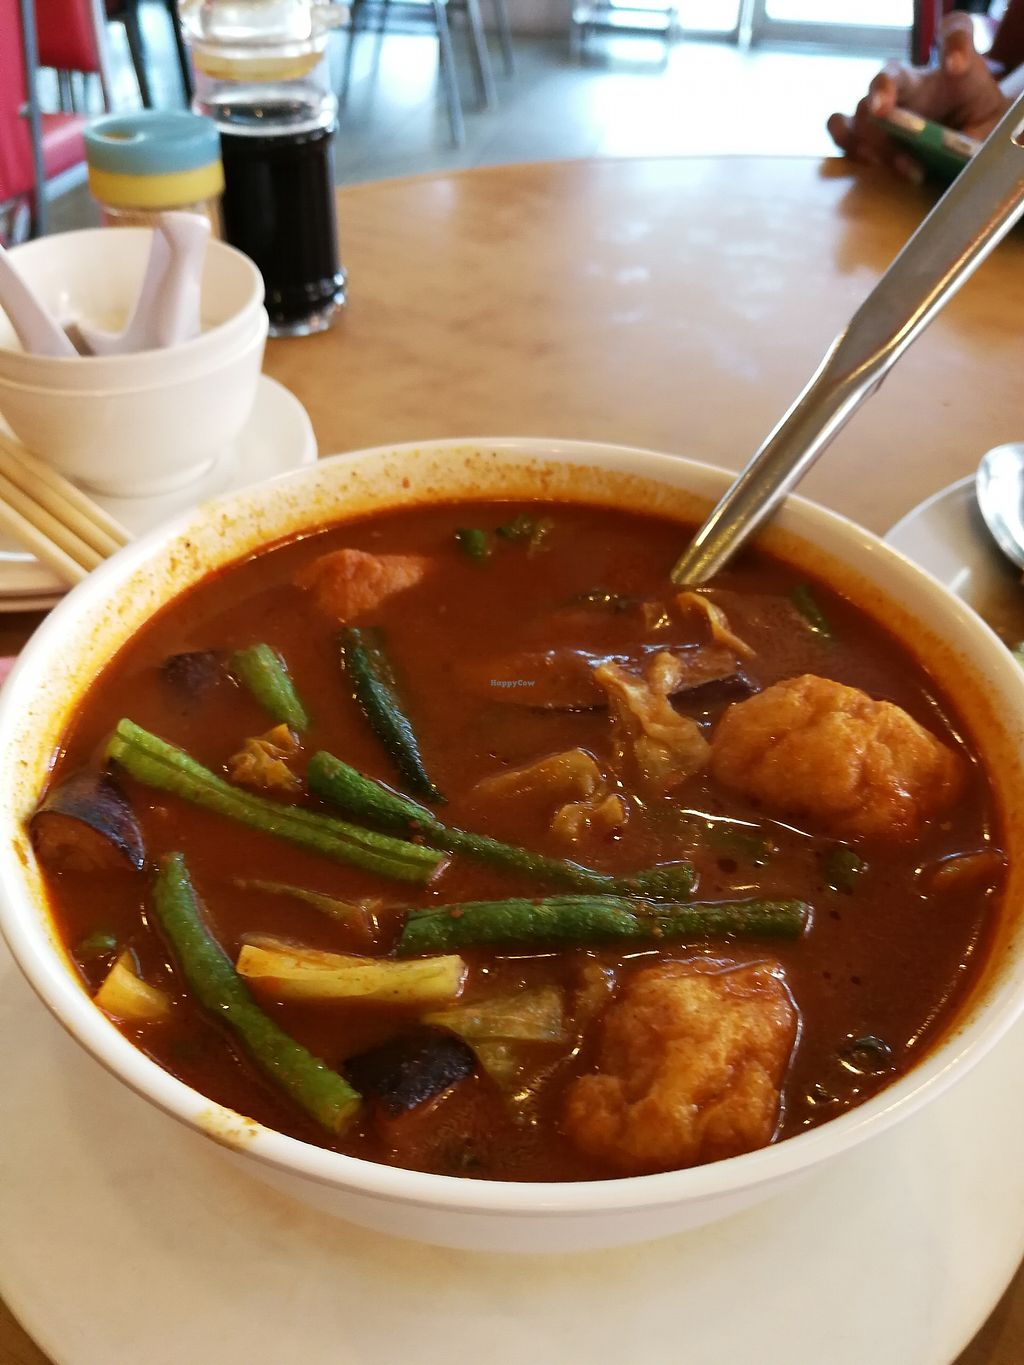 "Photo of Ring Zhi Vegetarian Restaurant  by <a href=""/members/profile/RawChefYin"">RawChefYin</a> <br/>Curry Vegetables (small) RM15 - remember to request for no milk